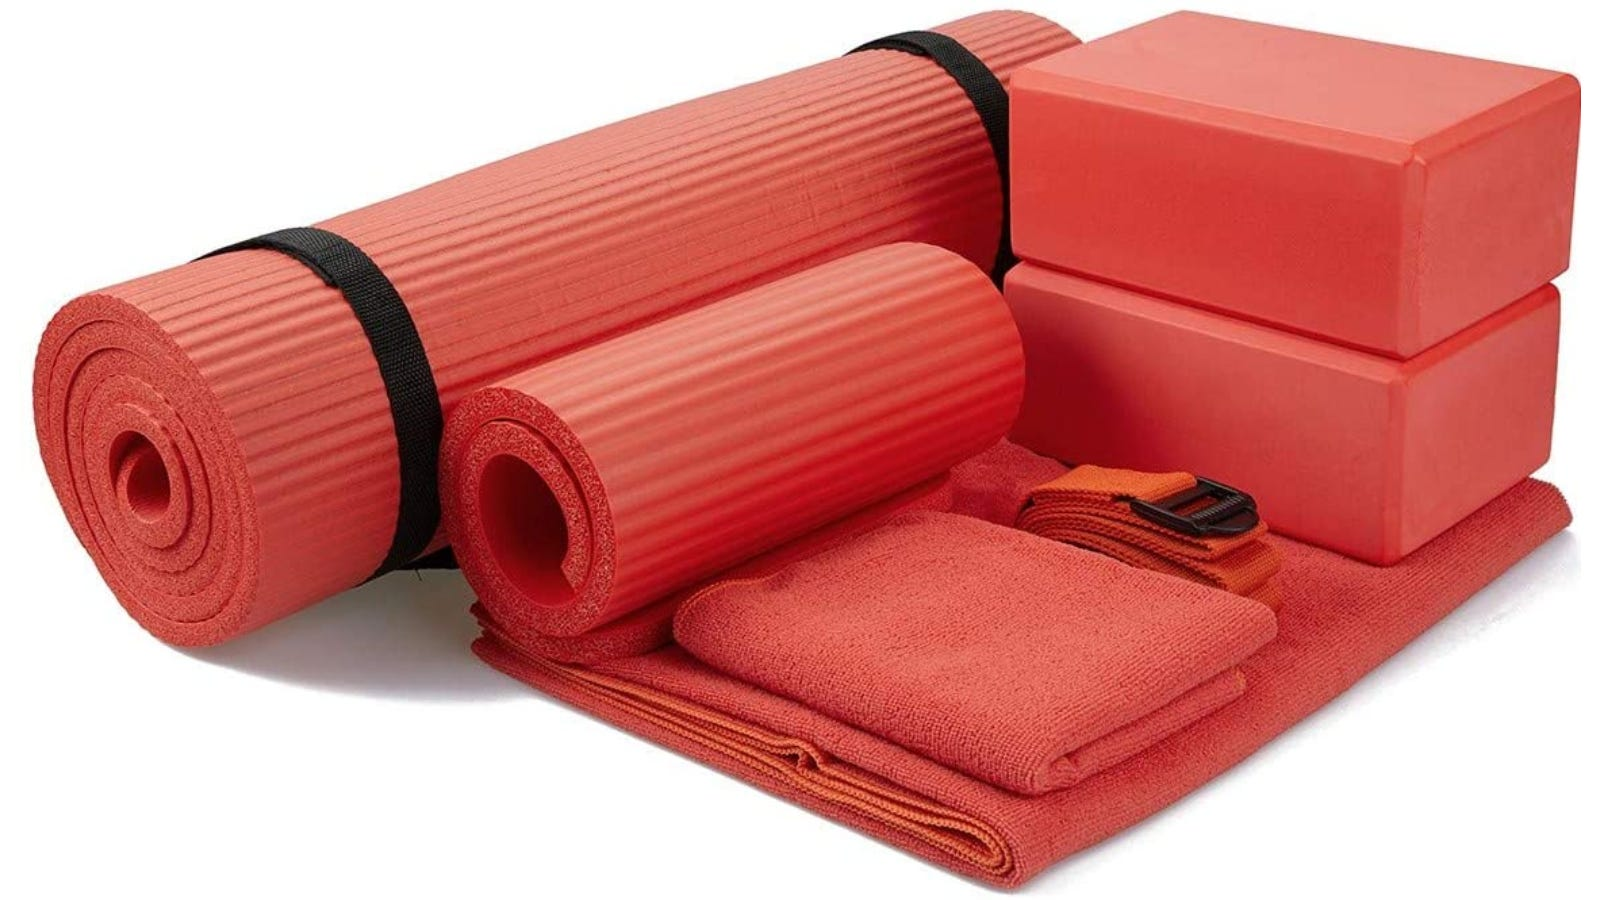 A red yoga set that has a rolled up yoga mat, carrying strap, small knee mat, two yoga blocks, a stretch strap, and two towels.